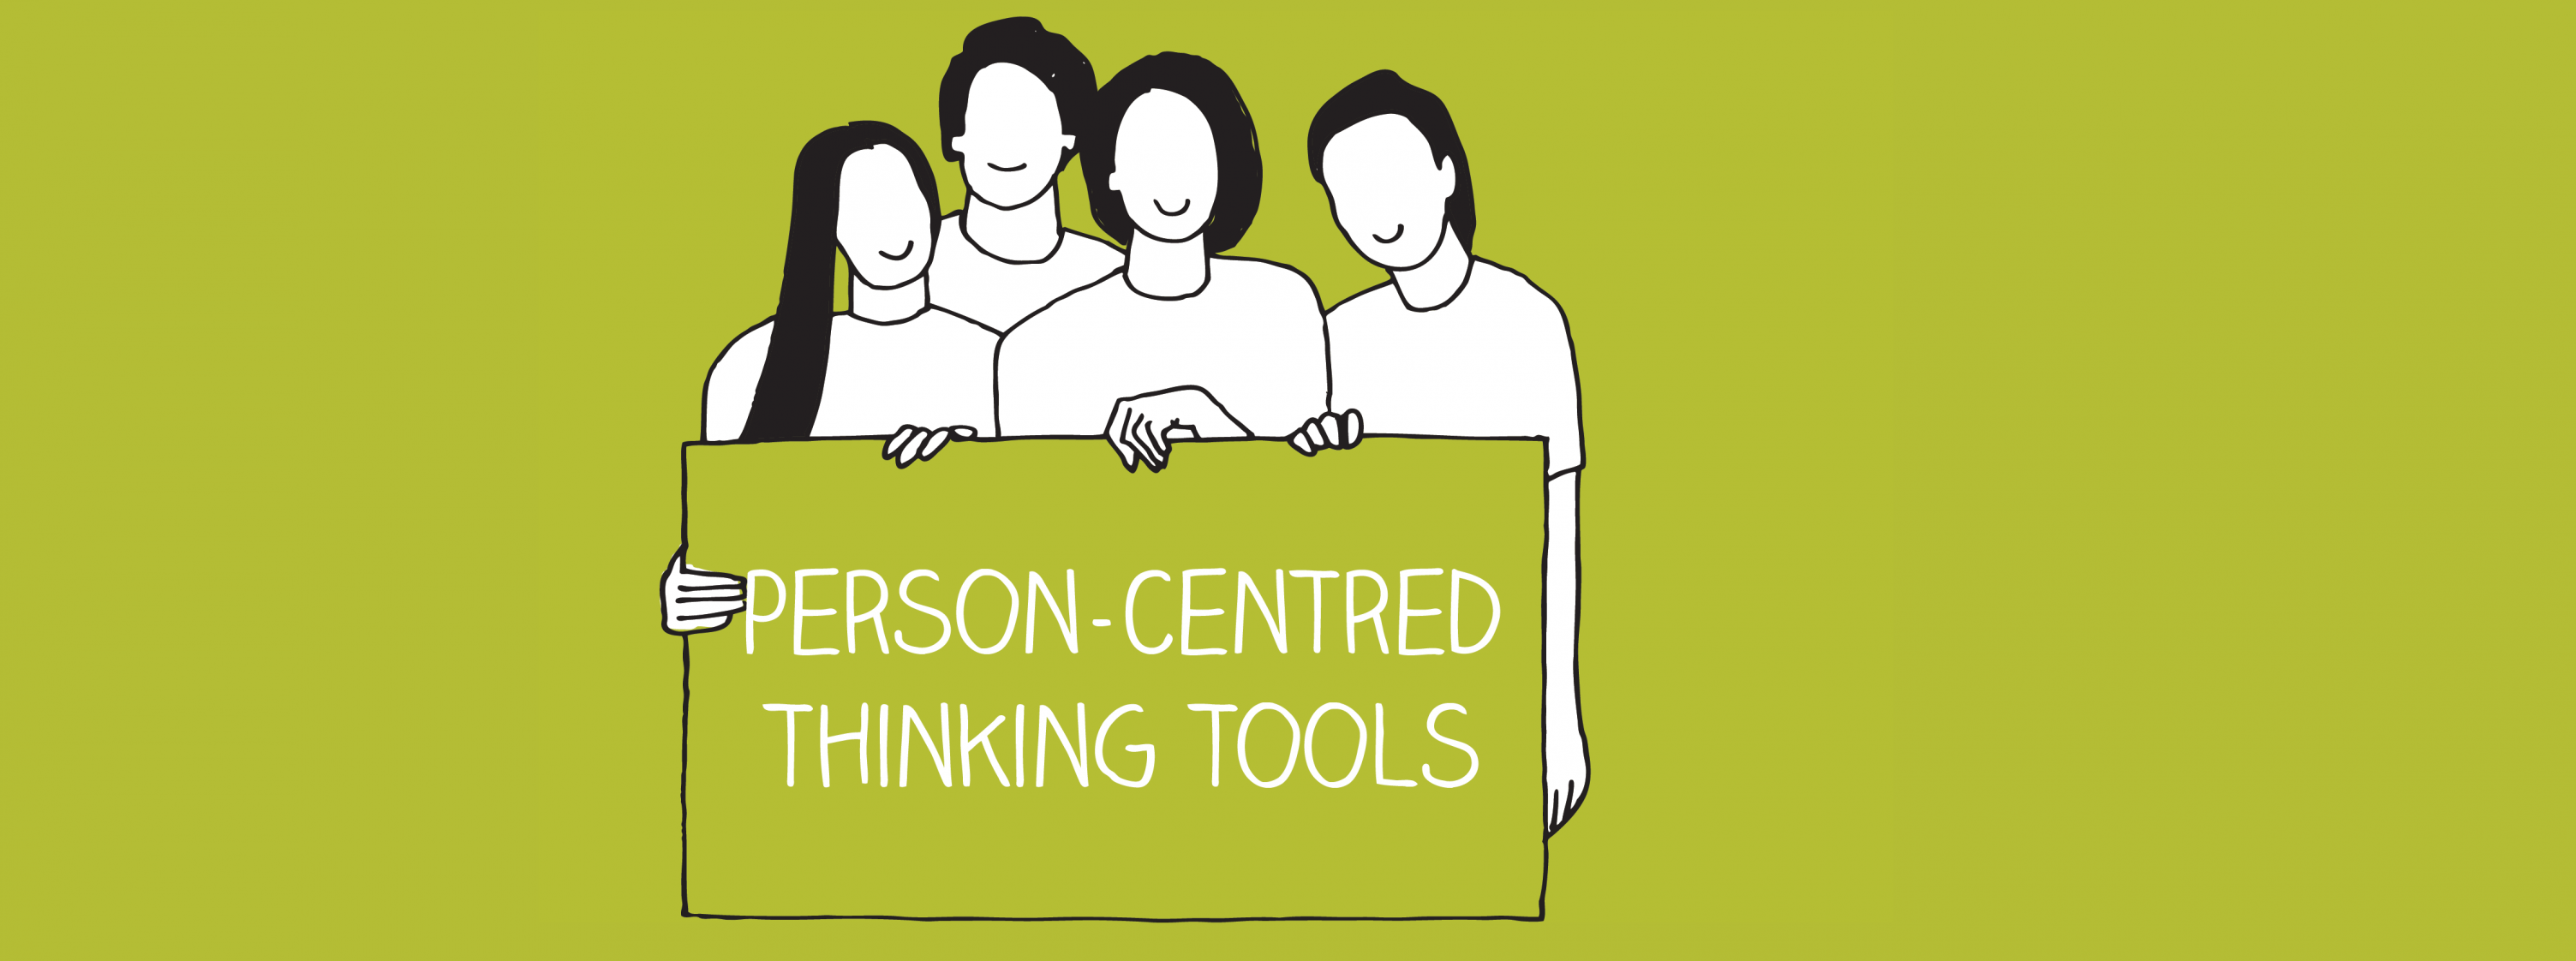 Person-centred thinking tools